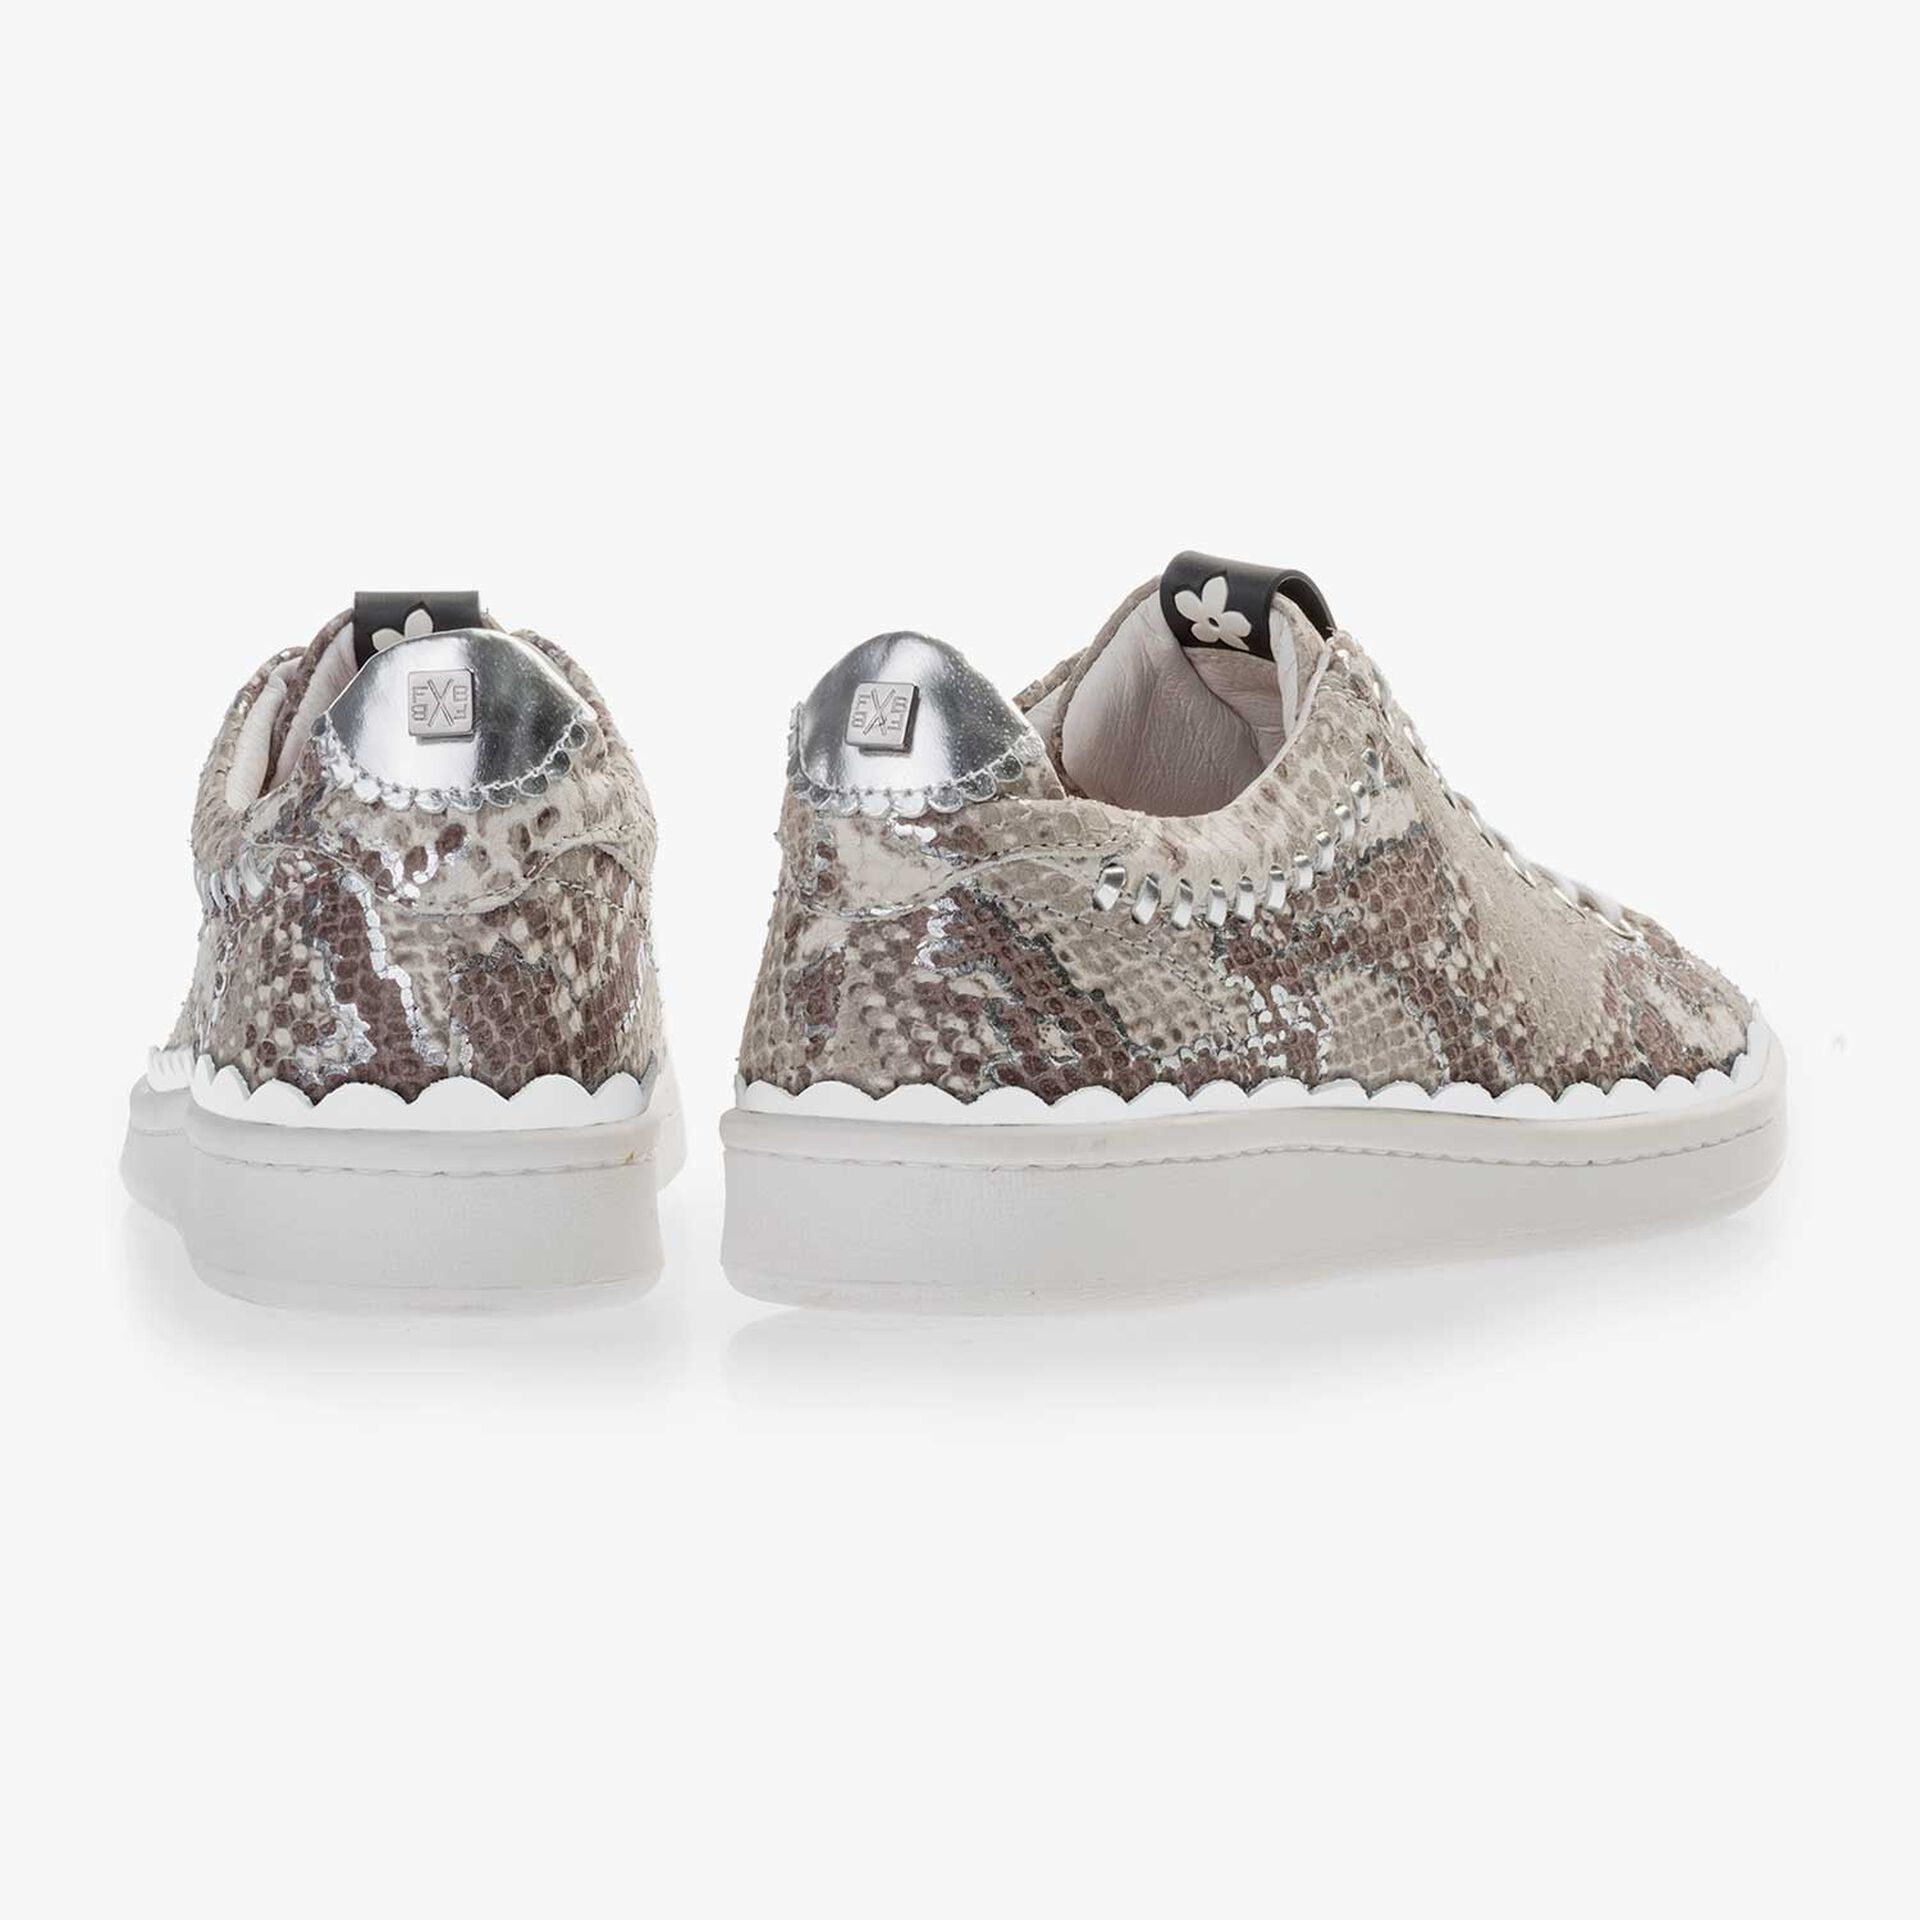 Taupe-coloured snake print leather sneaker